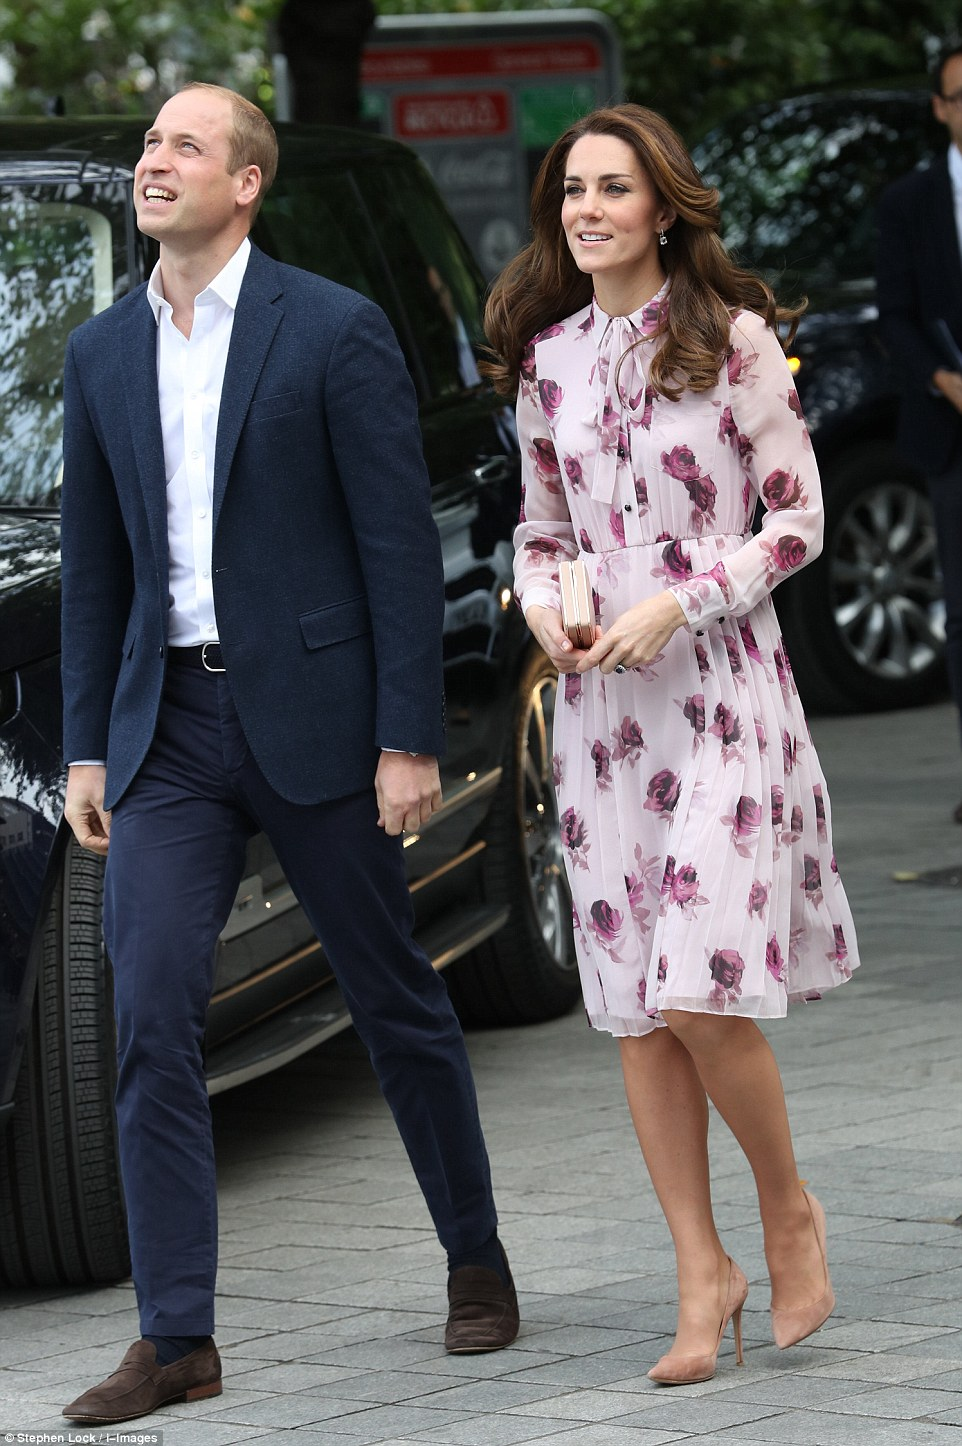 The Duke and Duchess of Cambridge and Prince Harry arriving to celebrate World Mental Health Day with a special Heads Together event at County Hall and The London Eye